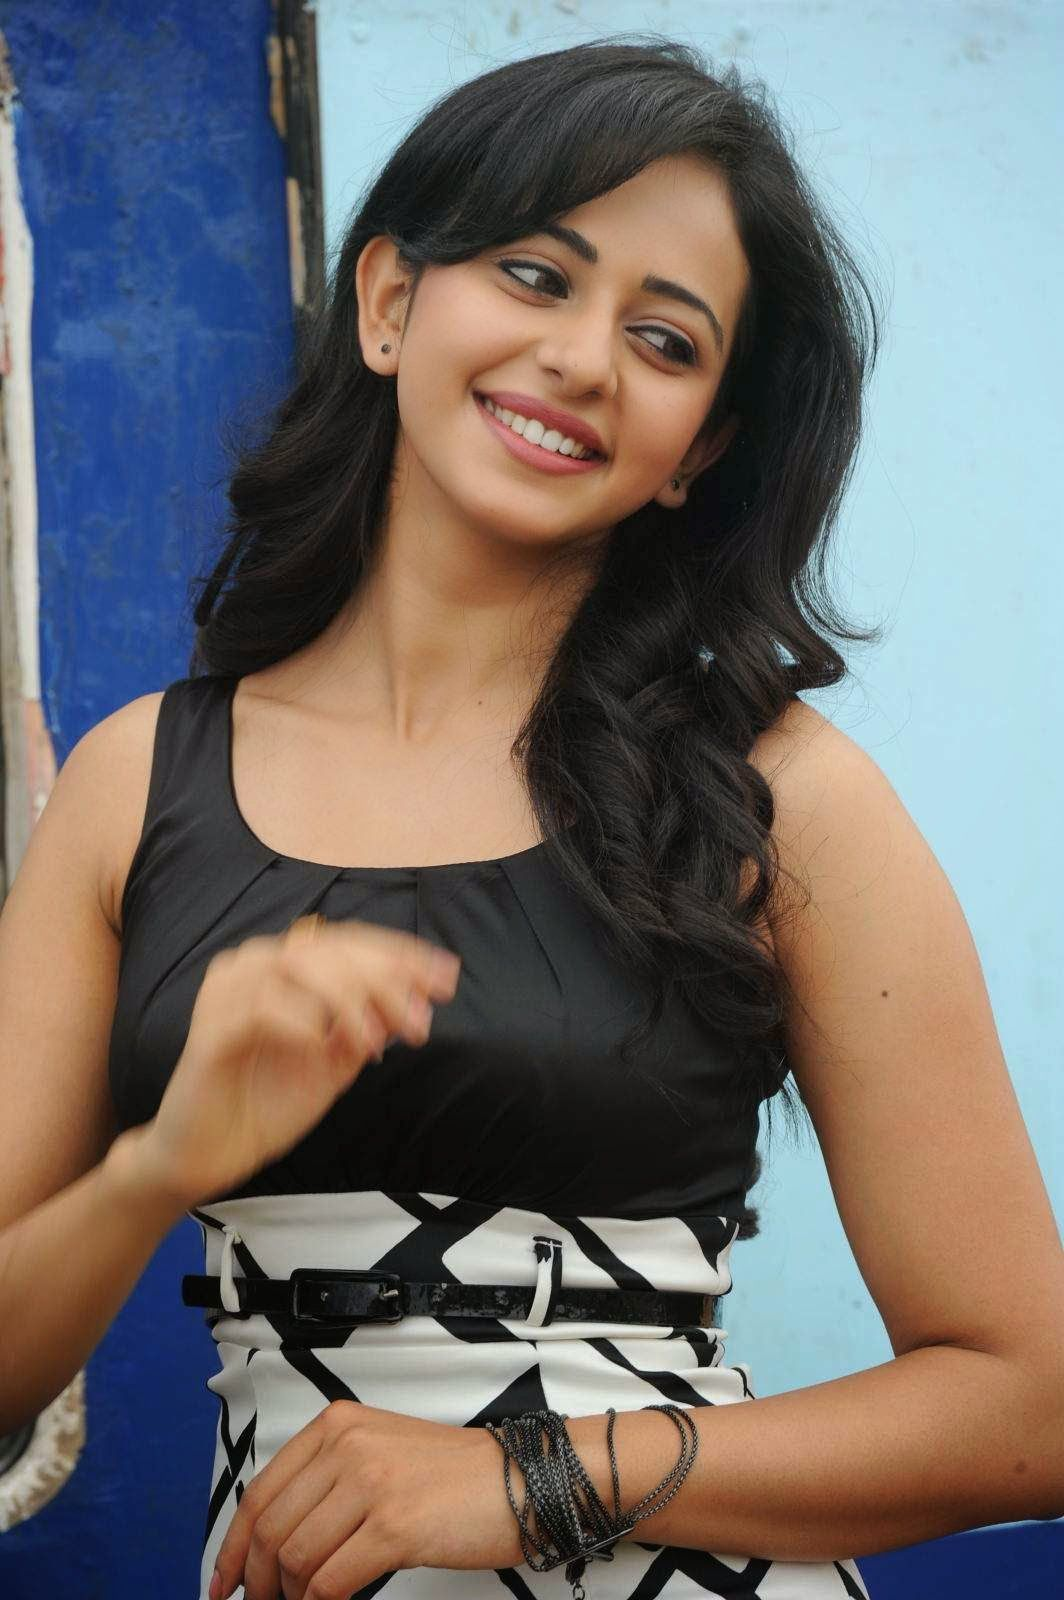 Hd wallpaper yaariyan - Rakul Preet Singh Hd Wallpapers In Yaariyan Images 57 Hd